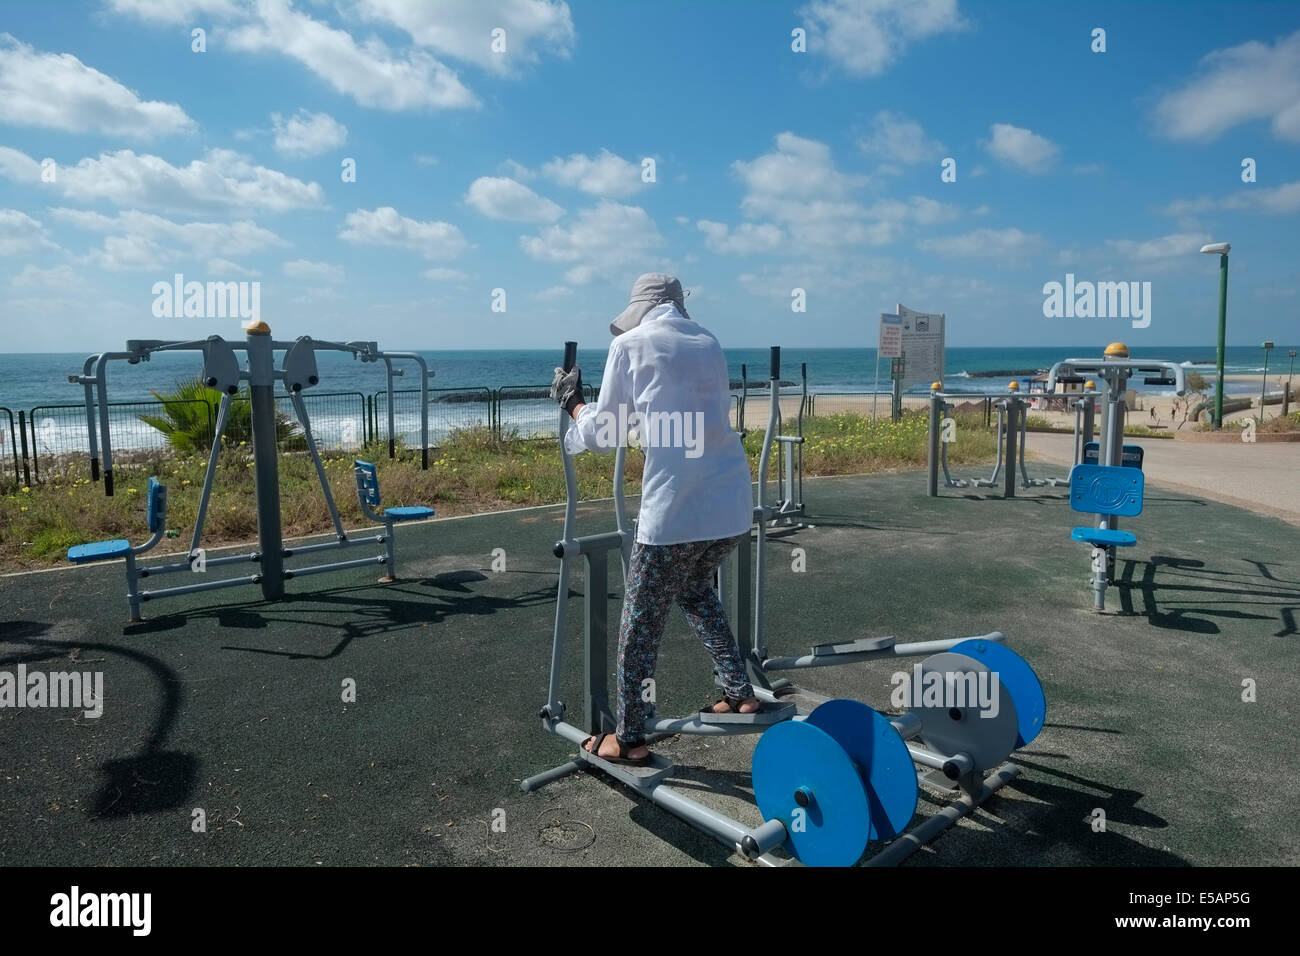 A woman working out in a gymnastic playground along the seacoast promenade in  the coastal city of Ashkelon in the - Stock Image